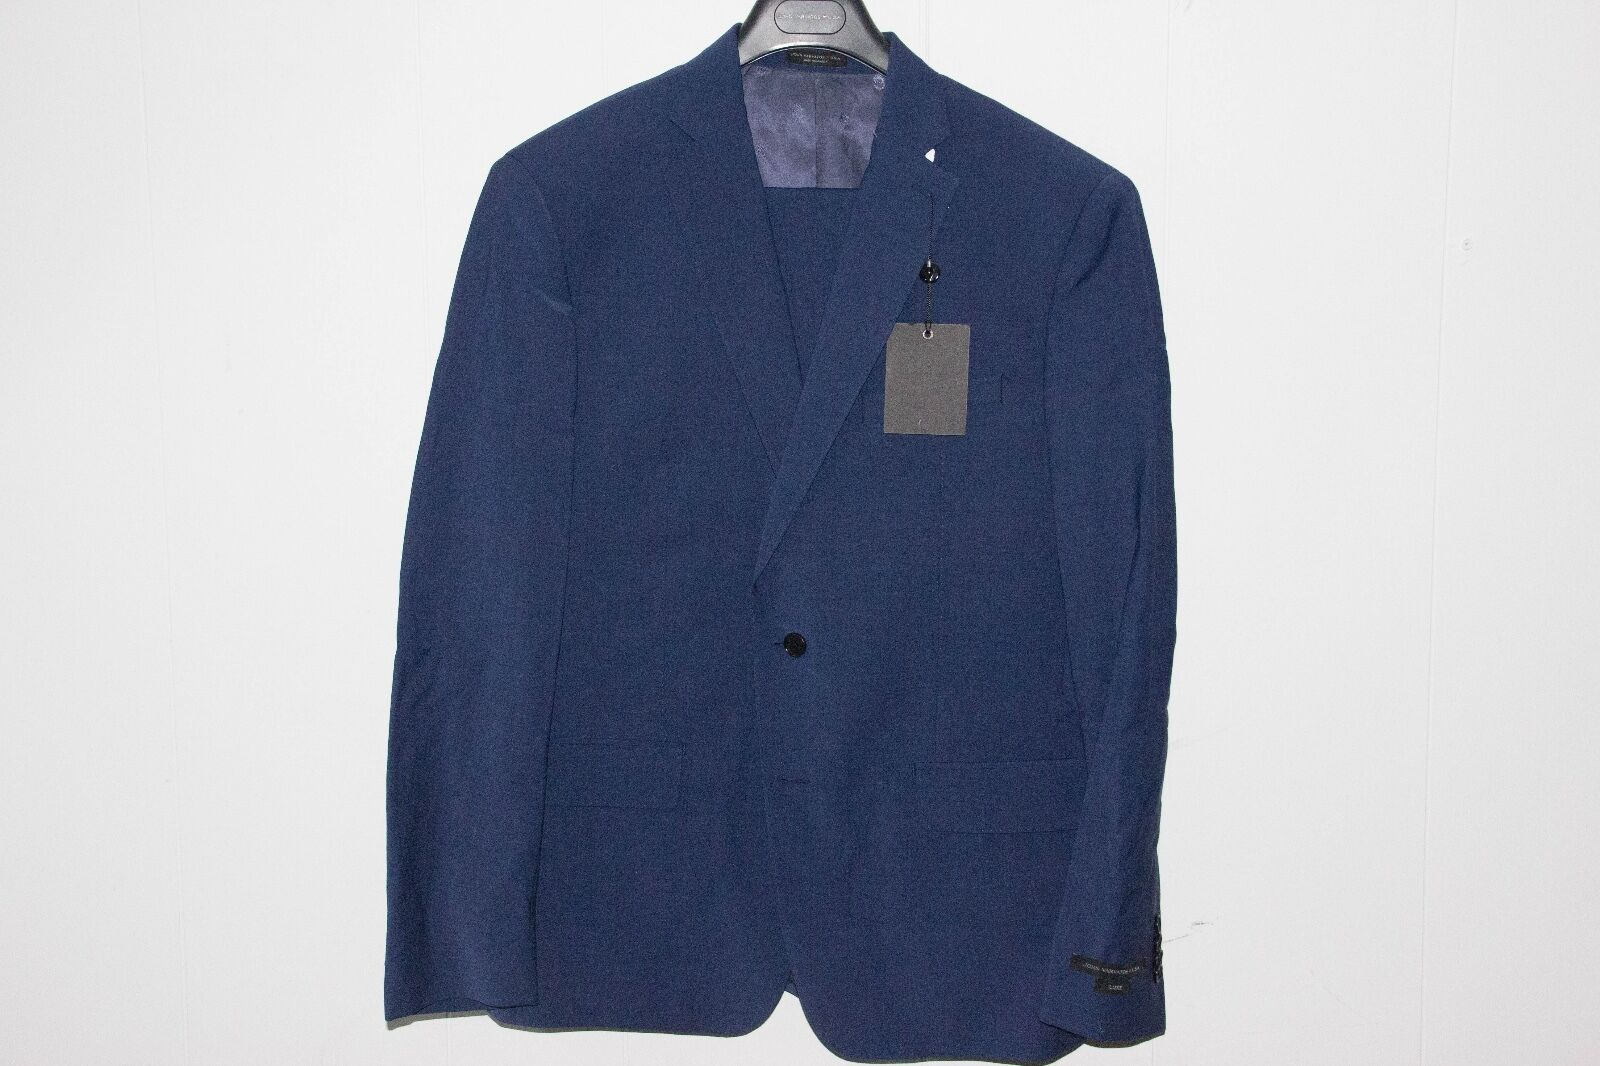 John Varvatos Bright Navy bluee Notched Lapel Wool-Blend Two-Piece Suit 42R